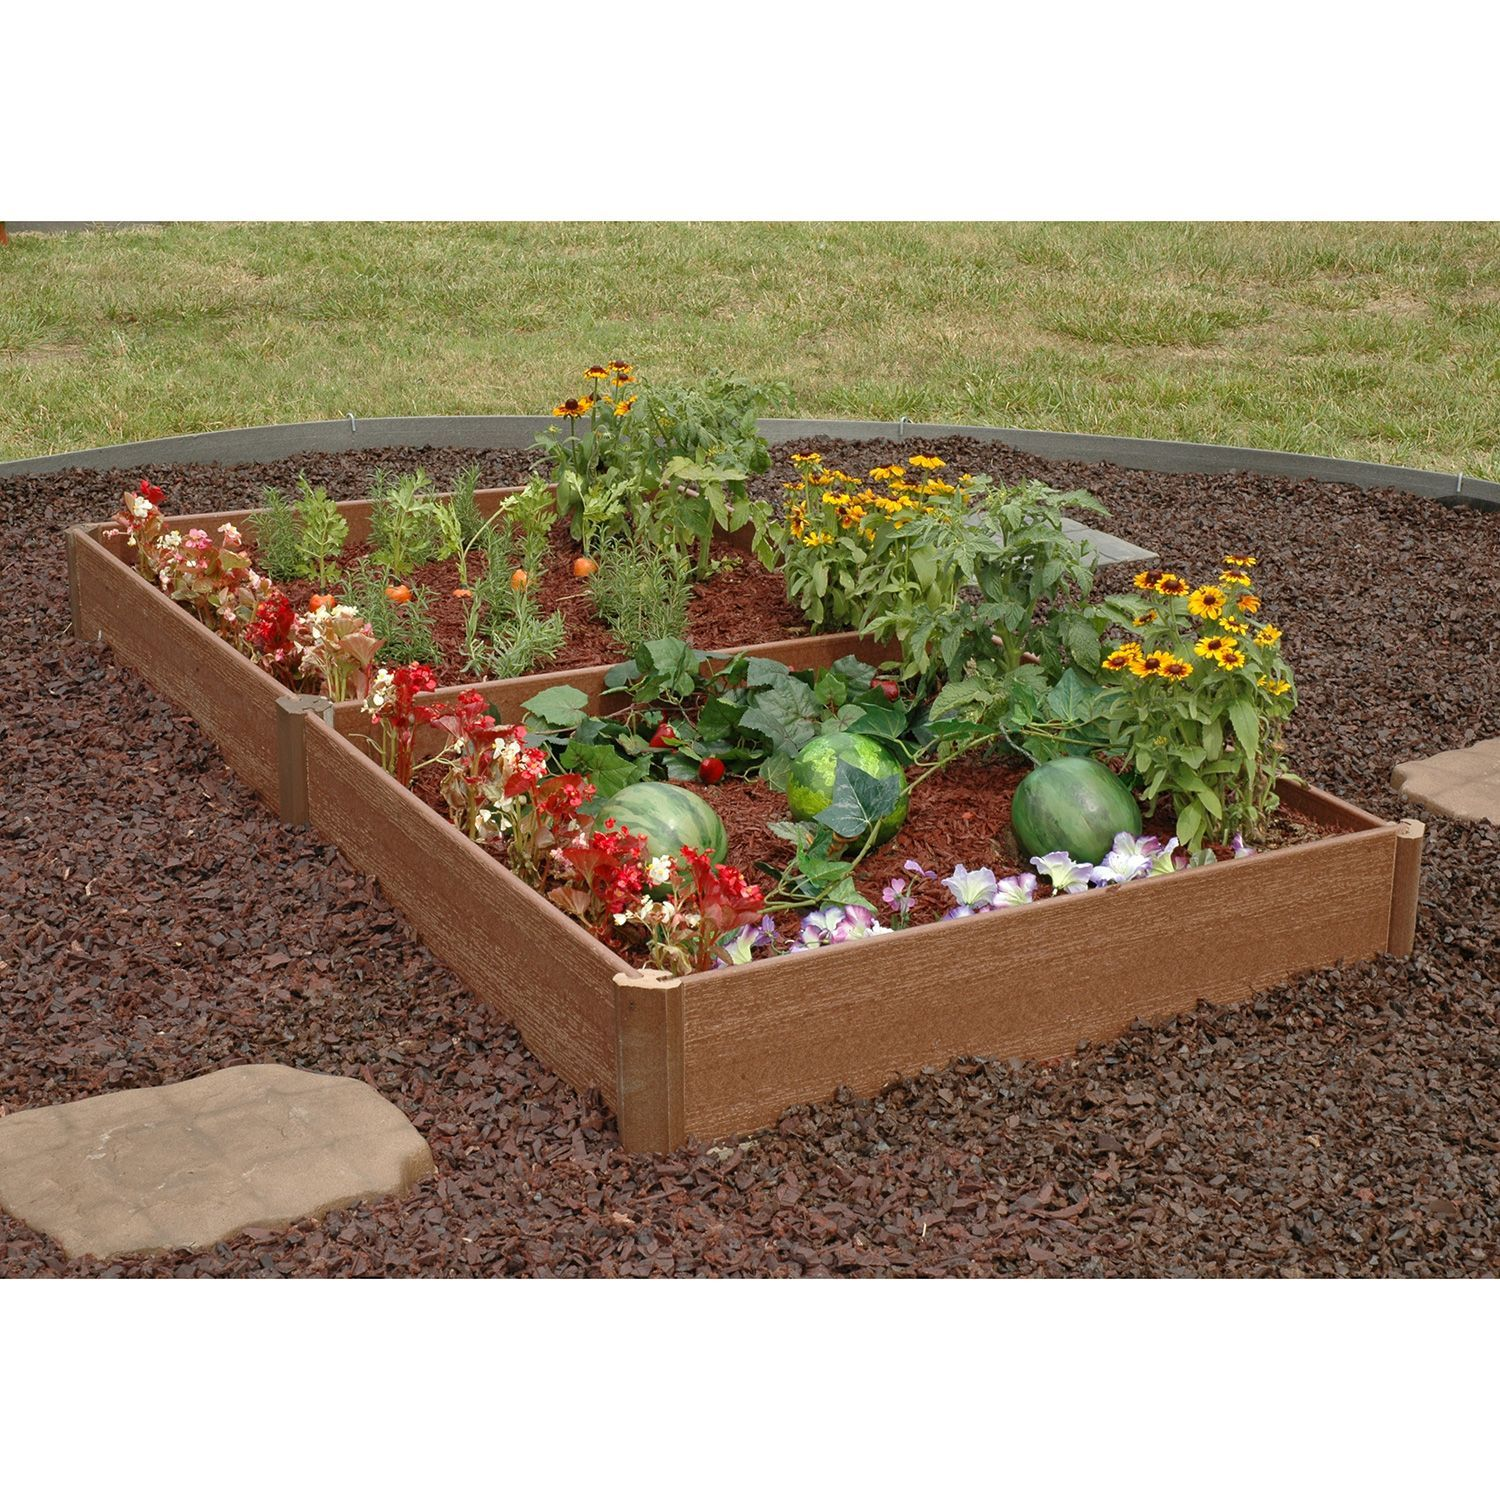 "Member's Mark 42"" X 84"" X 8"" Raised Bed Garden Kit, By"